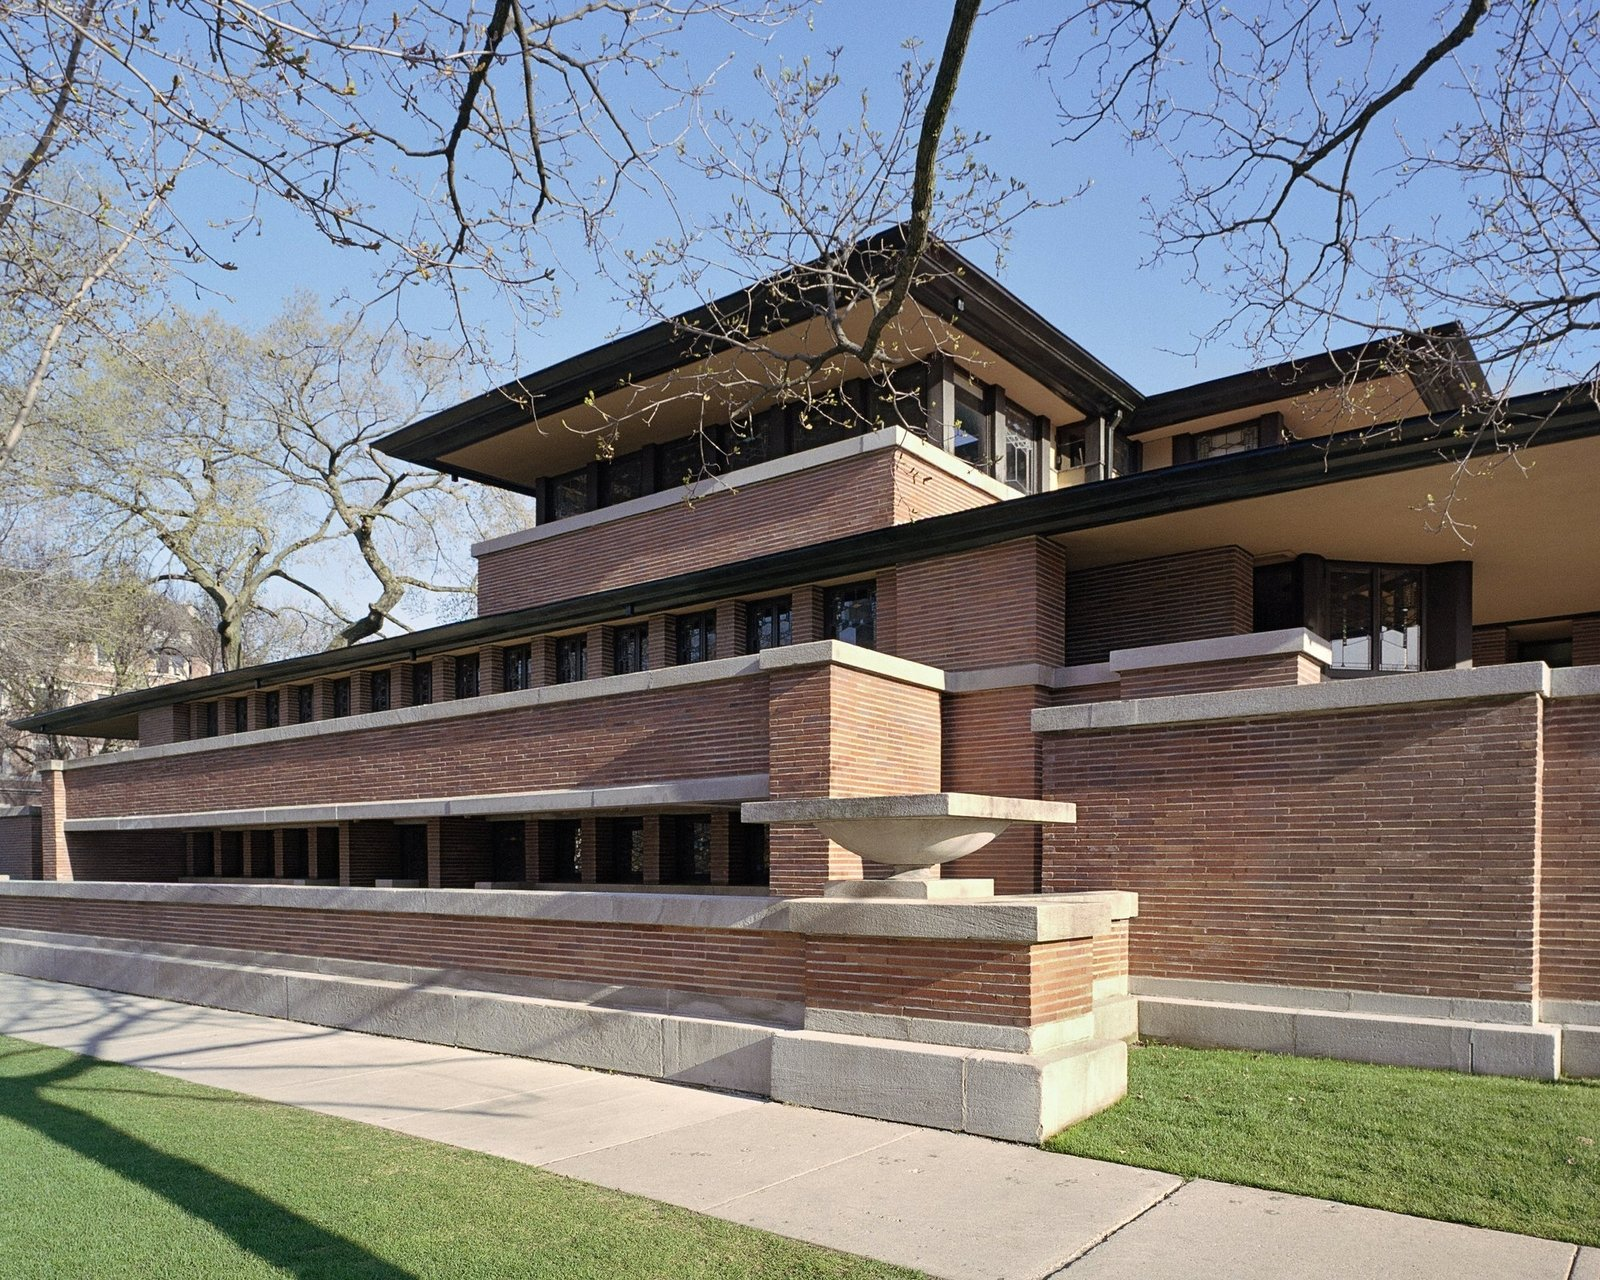 Exterior, Brick Siding Material, and House Building Type The Frederick C. Robie house, south elevation, Chicago, Illinois, by Frank Lloyd Wright.  Photo 8 of 10 in 10 Frank Lloyd Wright Buildings We Love from The Getty Foundation's Modern Architecture Conservation Initiative